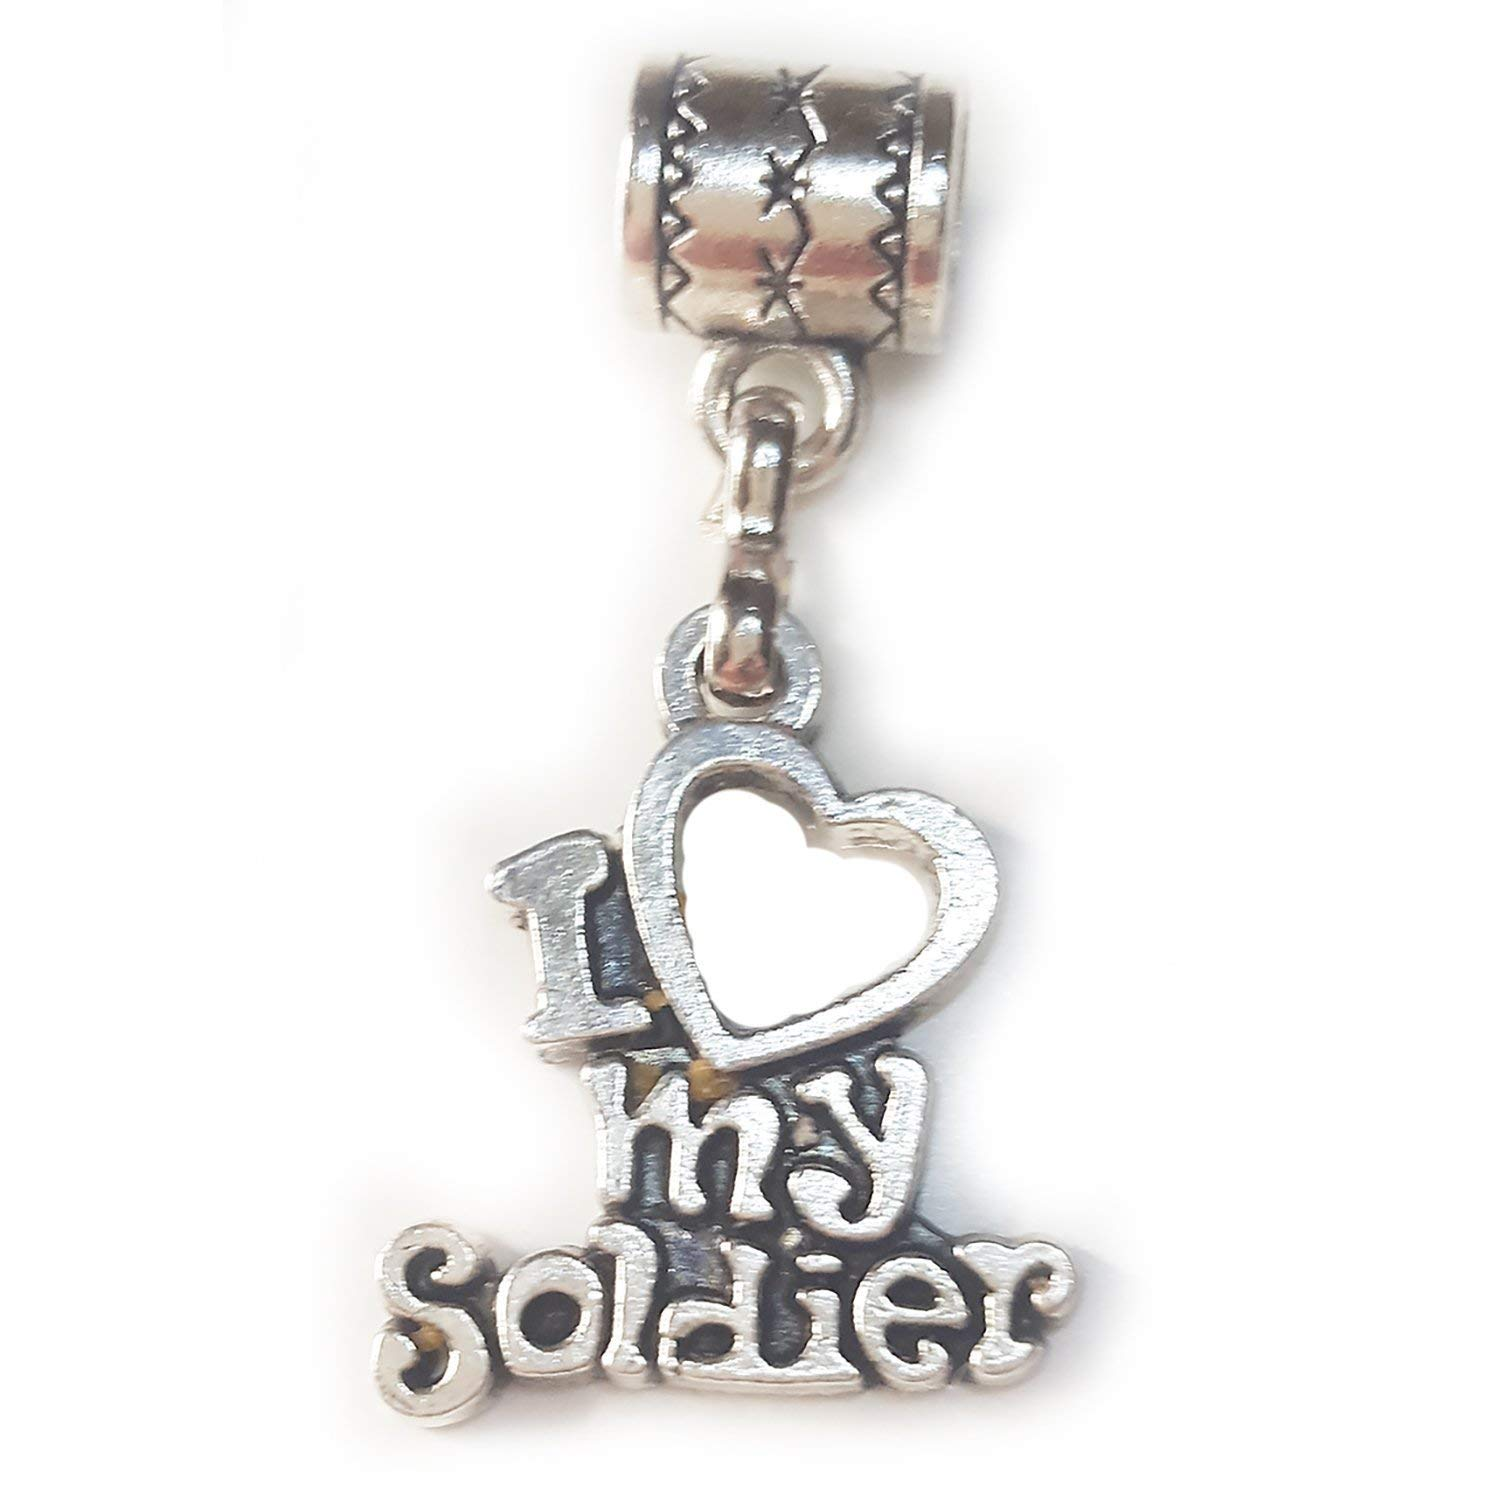 """I Love My Soldier charm"" is a Tibetan silver charm by Mossy Cabin for modern large hole snake chain charm bracelets, or add to a neck chain, pendant necklace or key chain"